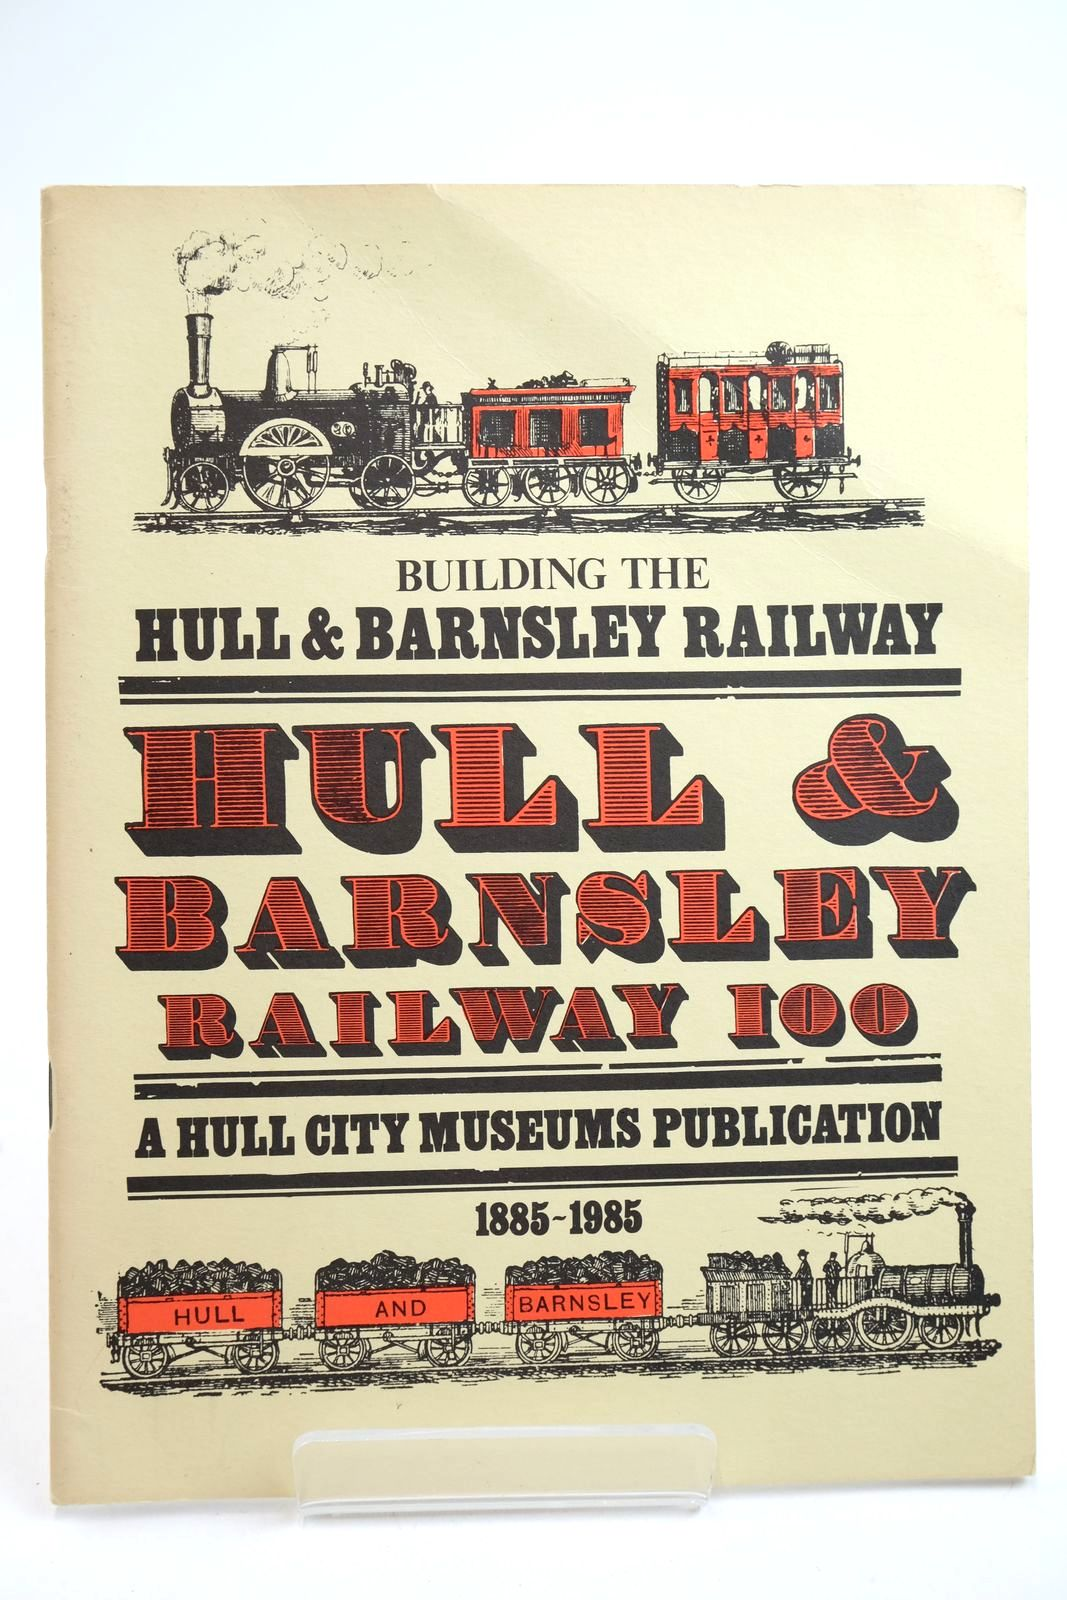 Photo of BUILDING THE HULL & BARNSLEY RAILWAY HULL & BARNSLEY RAILWAY 100 1885-1985 published by Hull City Museums (STOCK CODE: 2133132)  for sale by Stella & Rose's Books